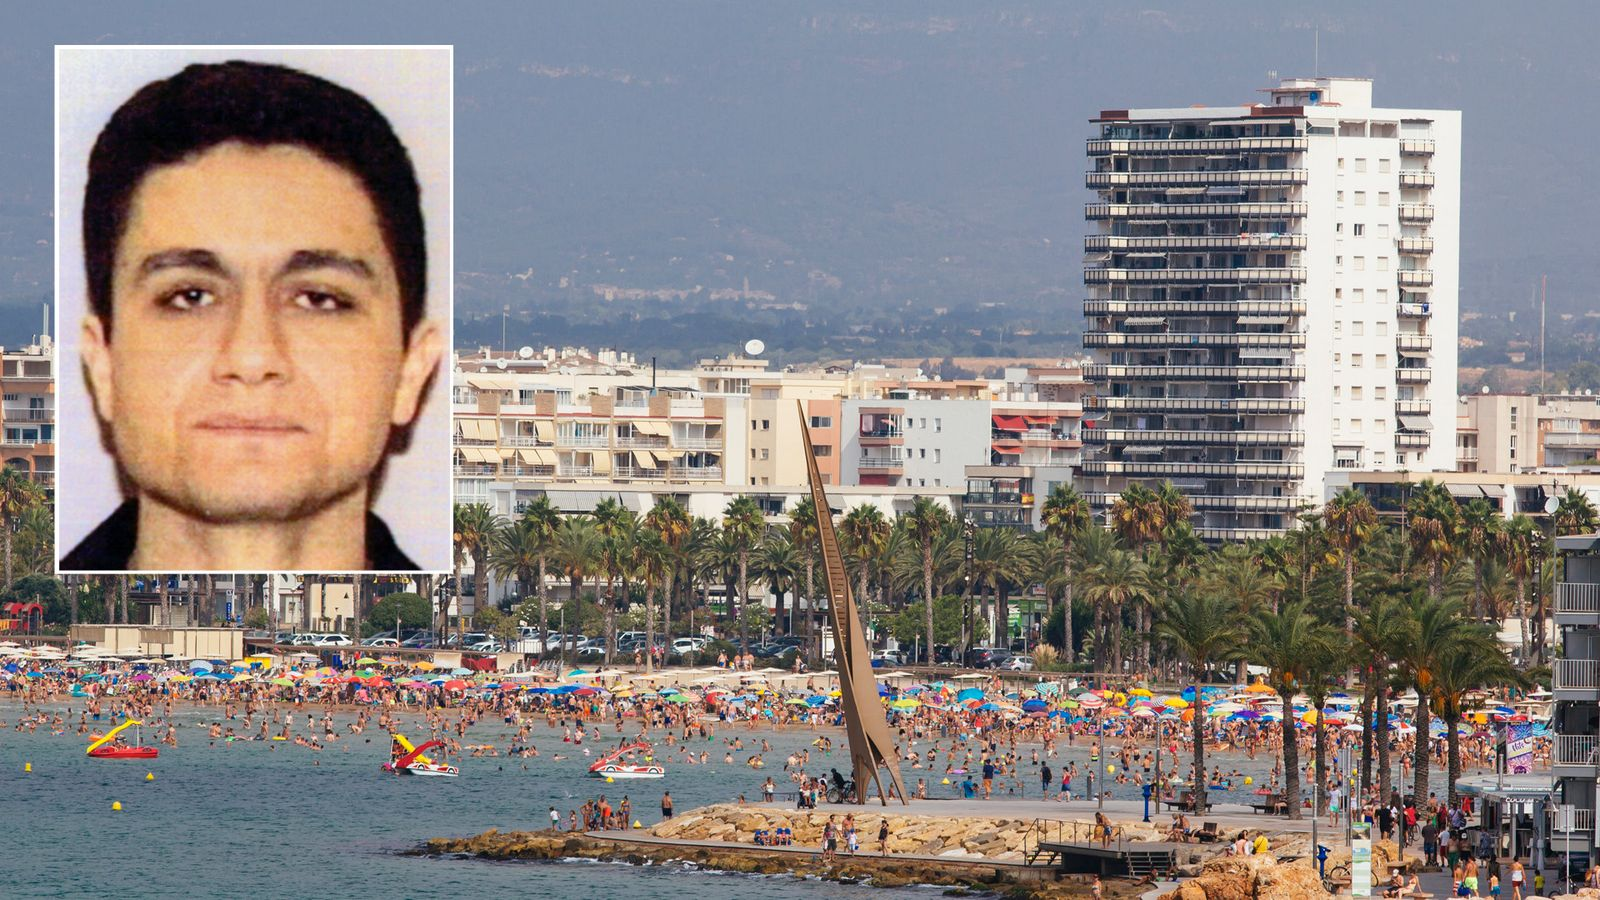 spain terror attacks 9 11 pilot met al qaeda plotter in cambrils